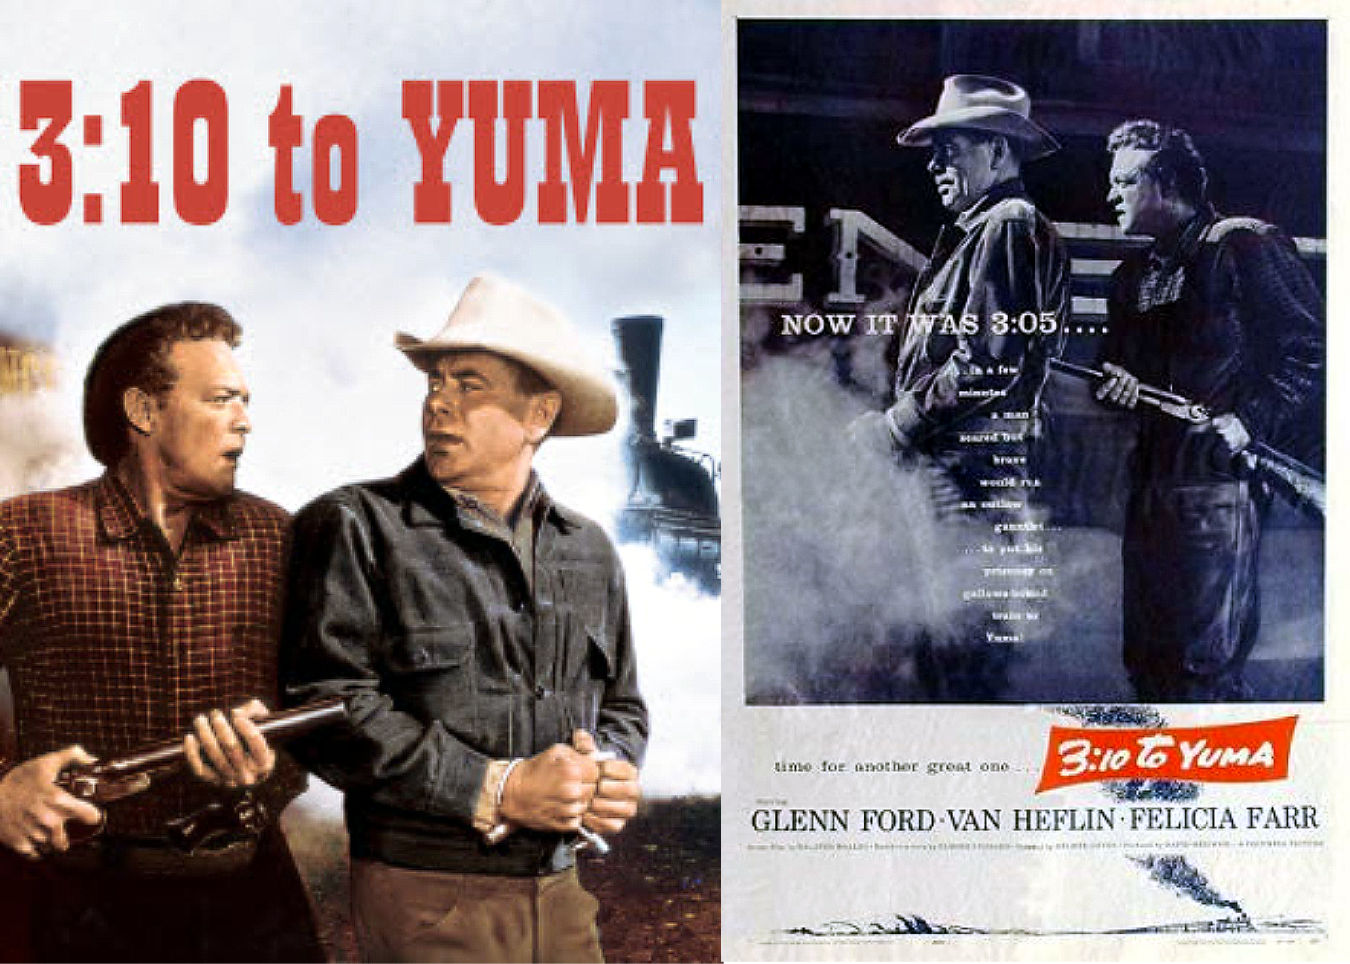 Lot to be said about 310 to yuma but i don t want to get too wordy